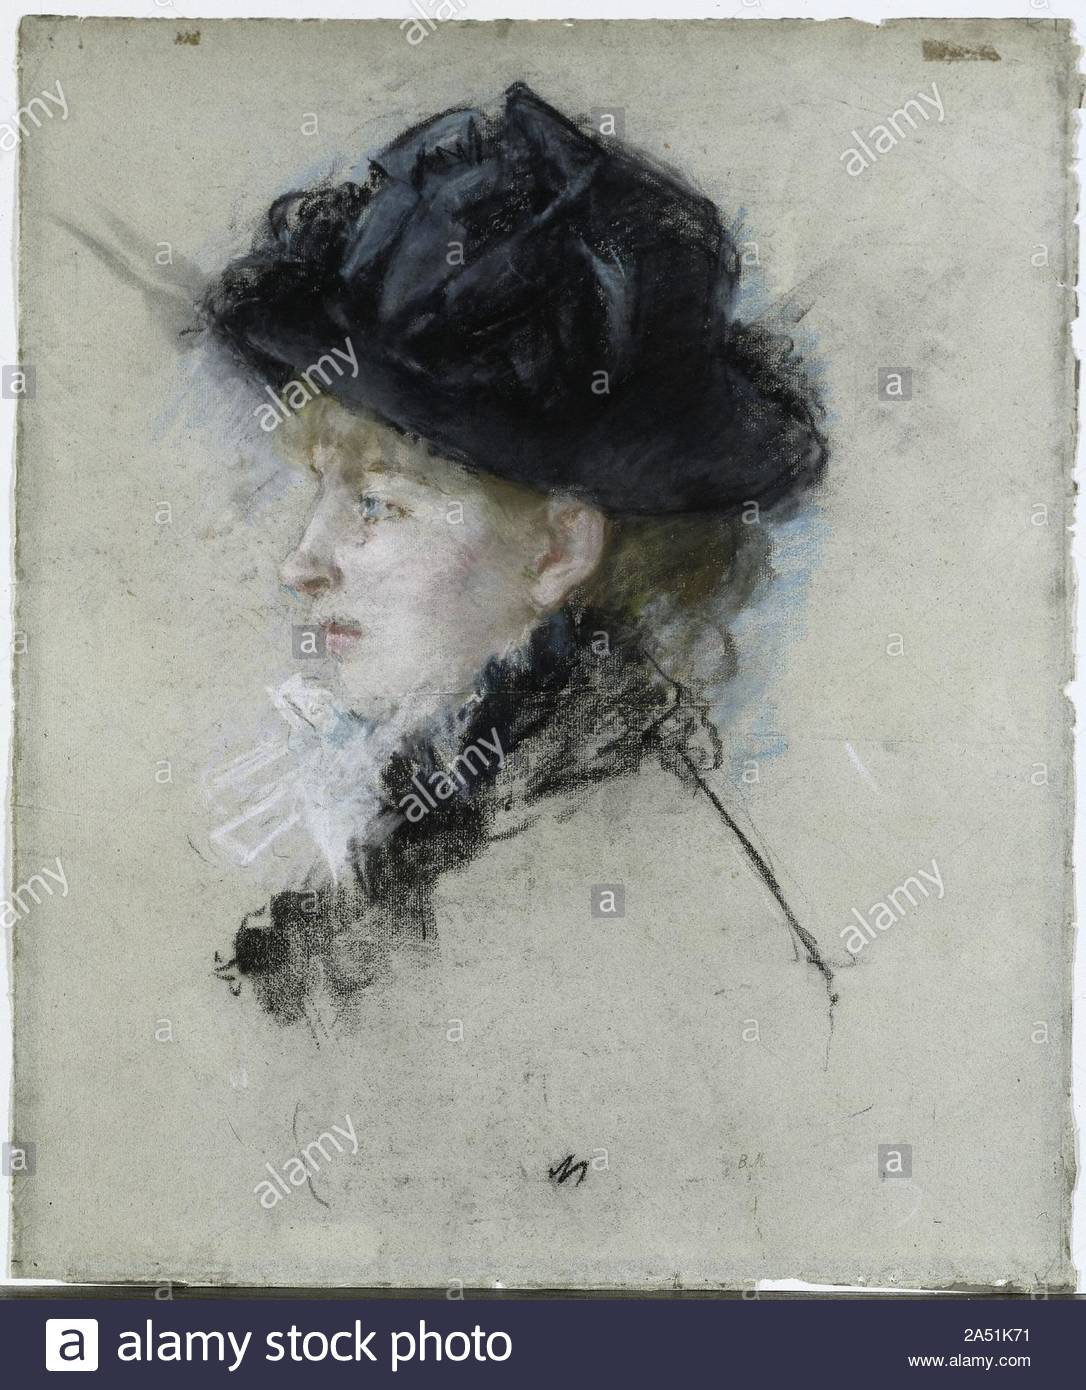 mlle louise riesener 1888 this pastel portrays morisotx2019s friend the daughter of lxe9on riesener a romantic painter and a first cousin of eugxe8ne delacroix here she pays homage to the pastel portraits of her friend and mentor edouard manet who had used the medium with exquisite spontaneity in the years leading up to his in 1883 she restricted herself to the limited palette of manetx2019s pastels using only black and white with touches of pink at the mouth and blue to enliven the eye 2A51K71